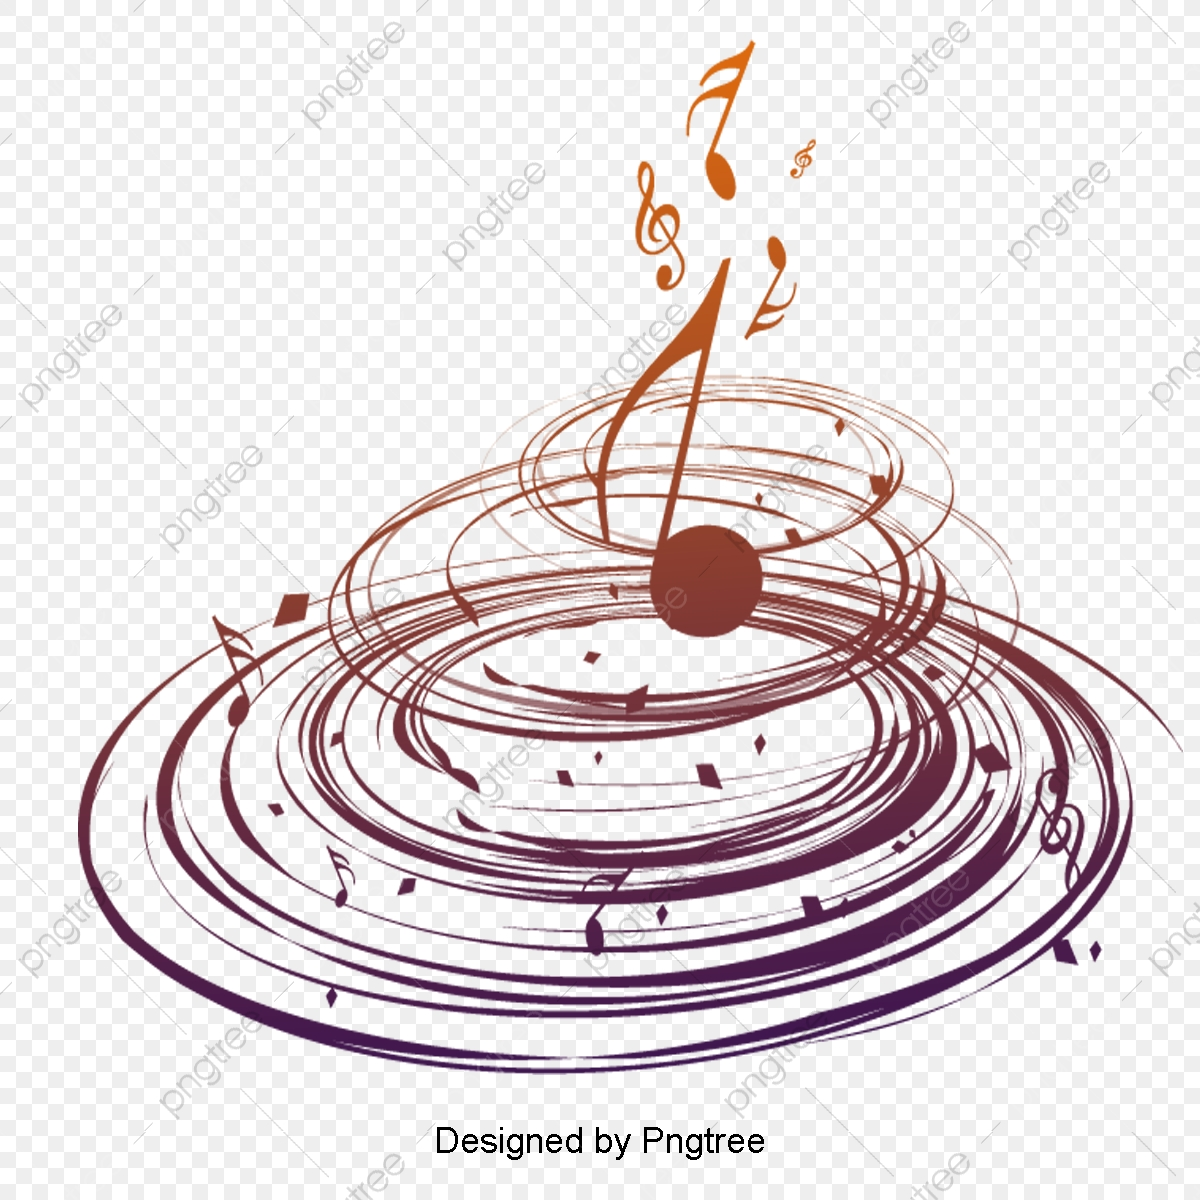 Beautiful Cartoon Hand Painted Music Symbol Staff Aesthetic Cartoon Hand Painted Png Transparent Clipart Image And Psd File For Free Download